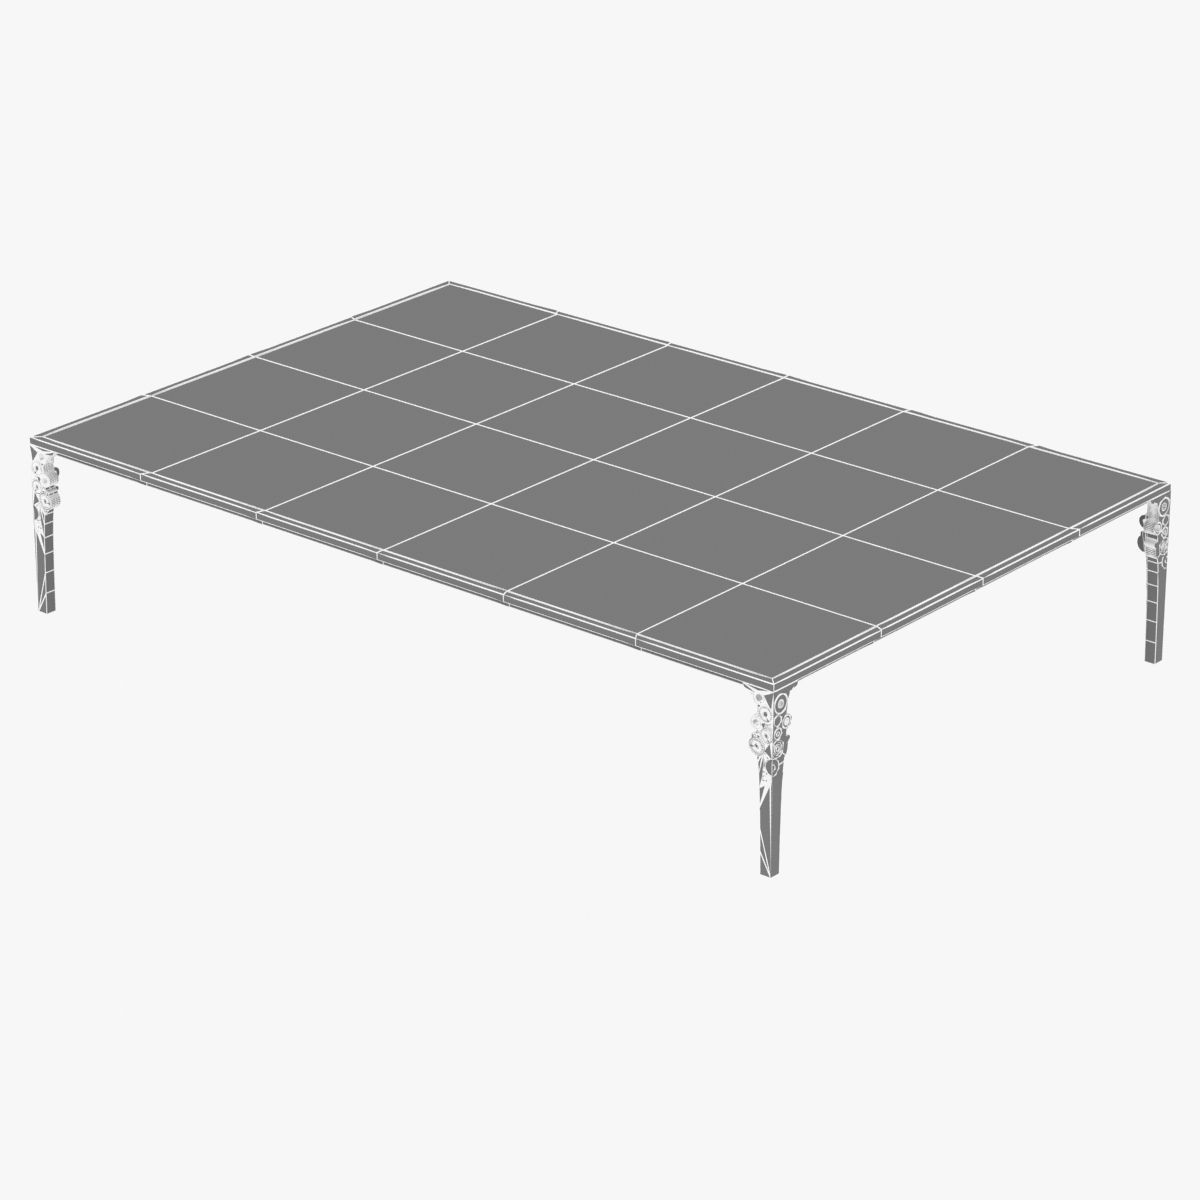 Ingrid donat table basse anneaux 3d model max obj 3ds for Table basse 3 suisses